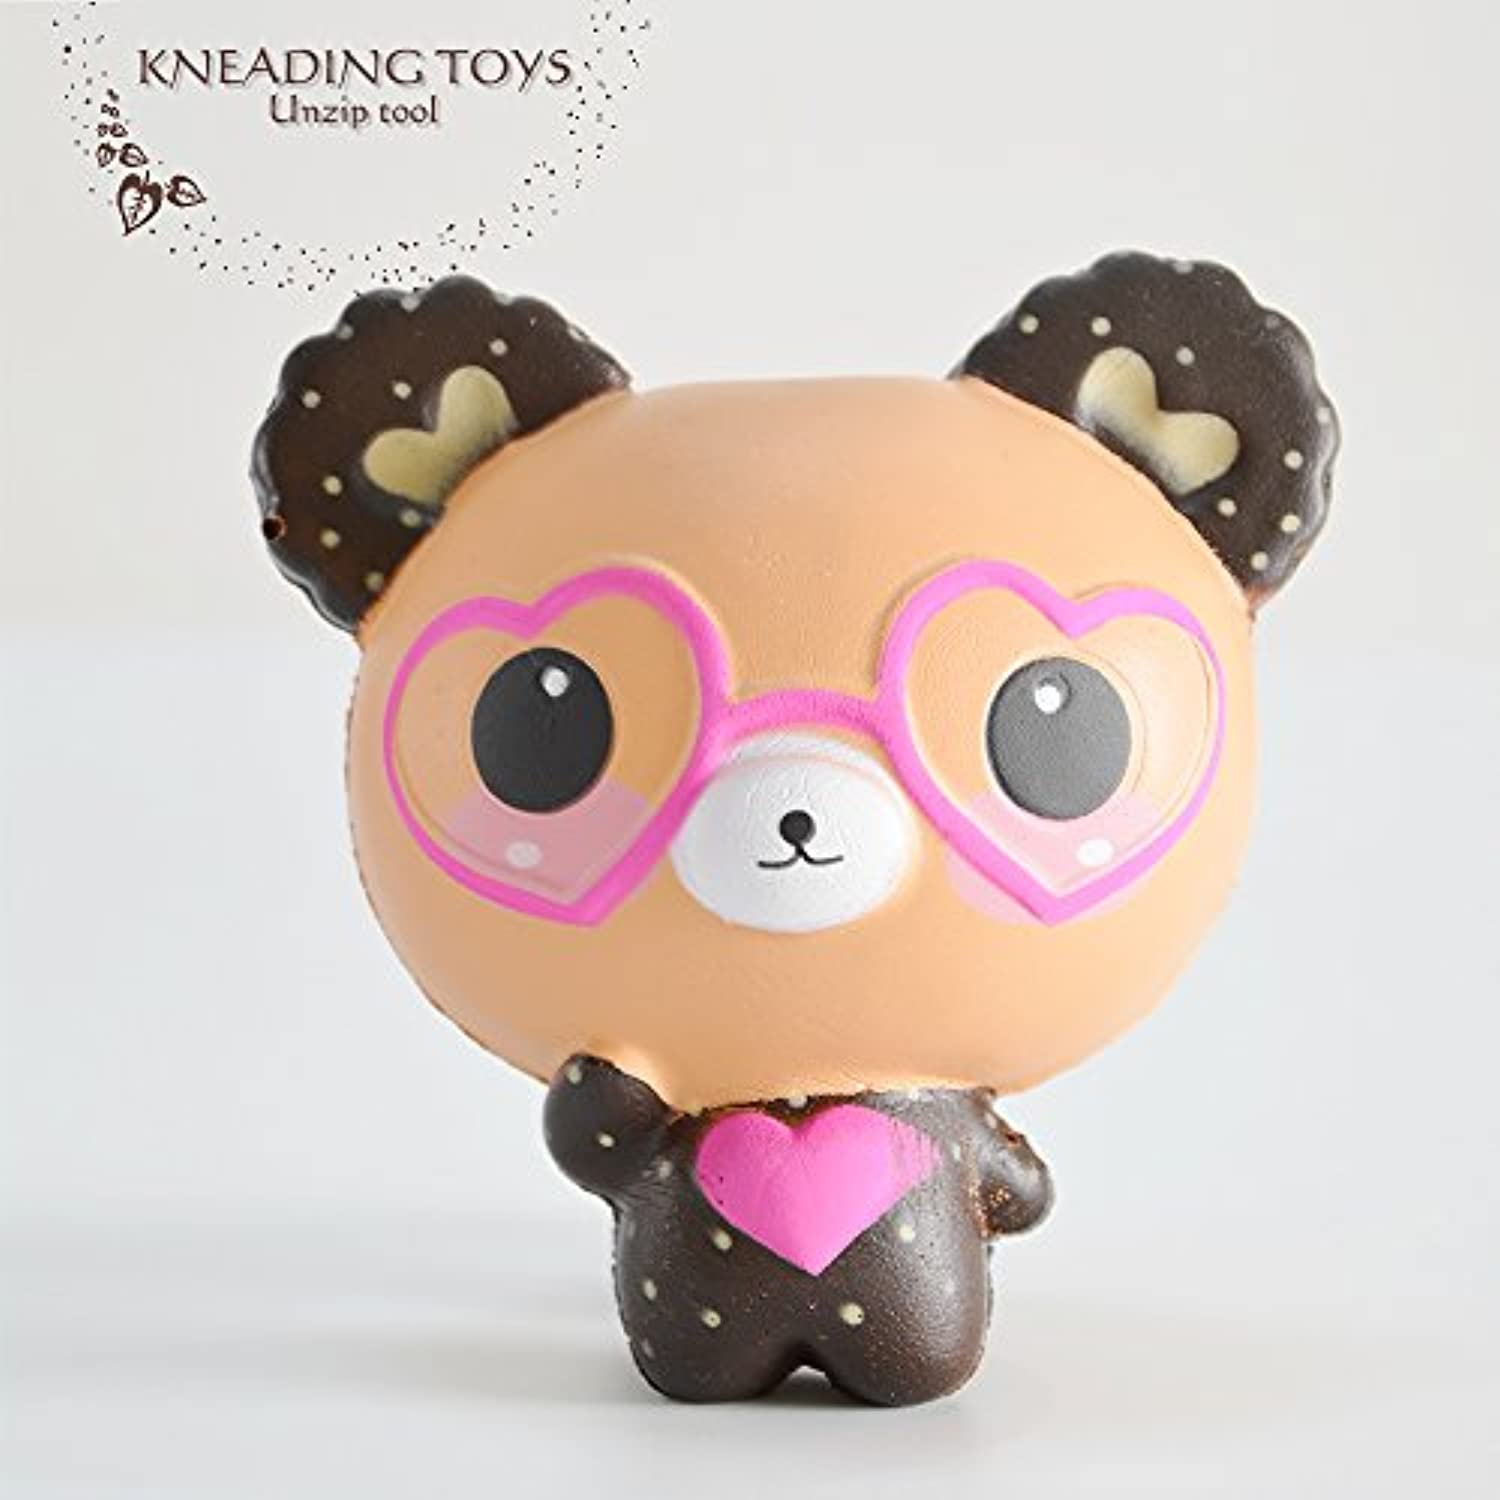 vcostore Squishies Slow RisingジャンボKawaii Cute Glasses Bearクリーミー香りfor KidsパーティーおもちゃStress Reliever Toy